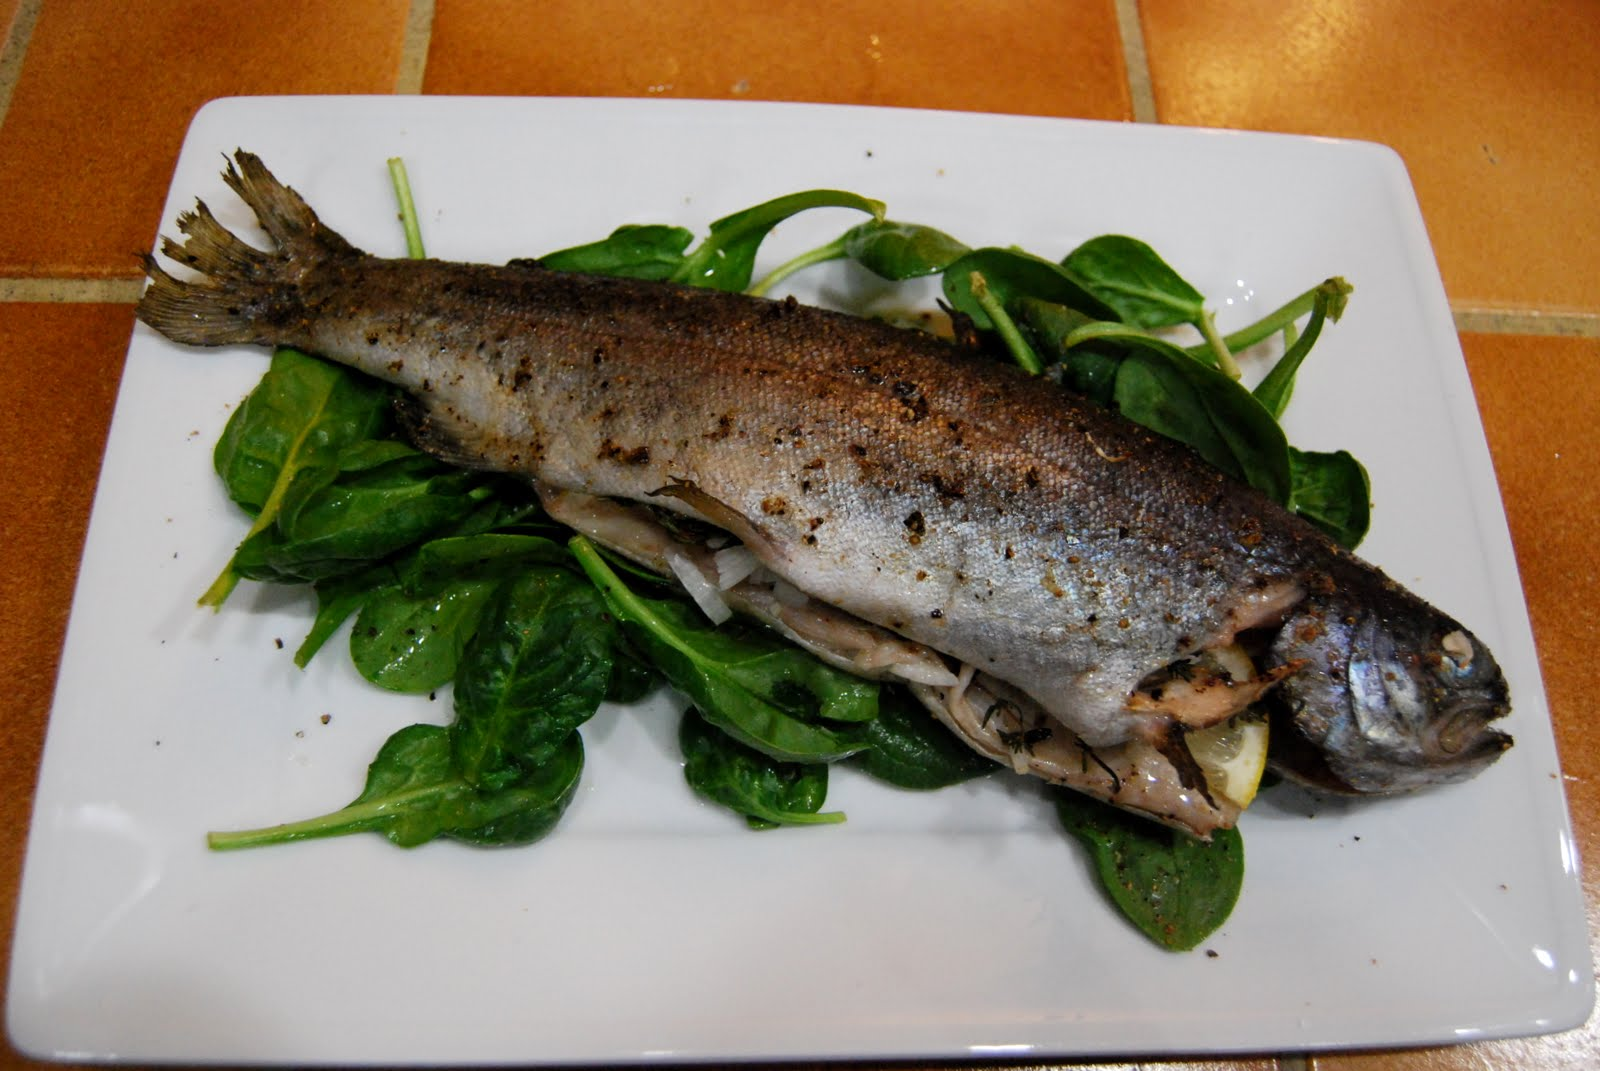 EAT Everyday: Roasted Trout with Herbs and Lemon